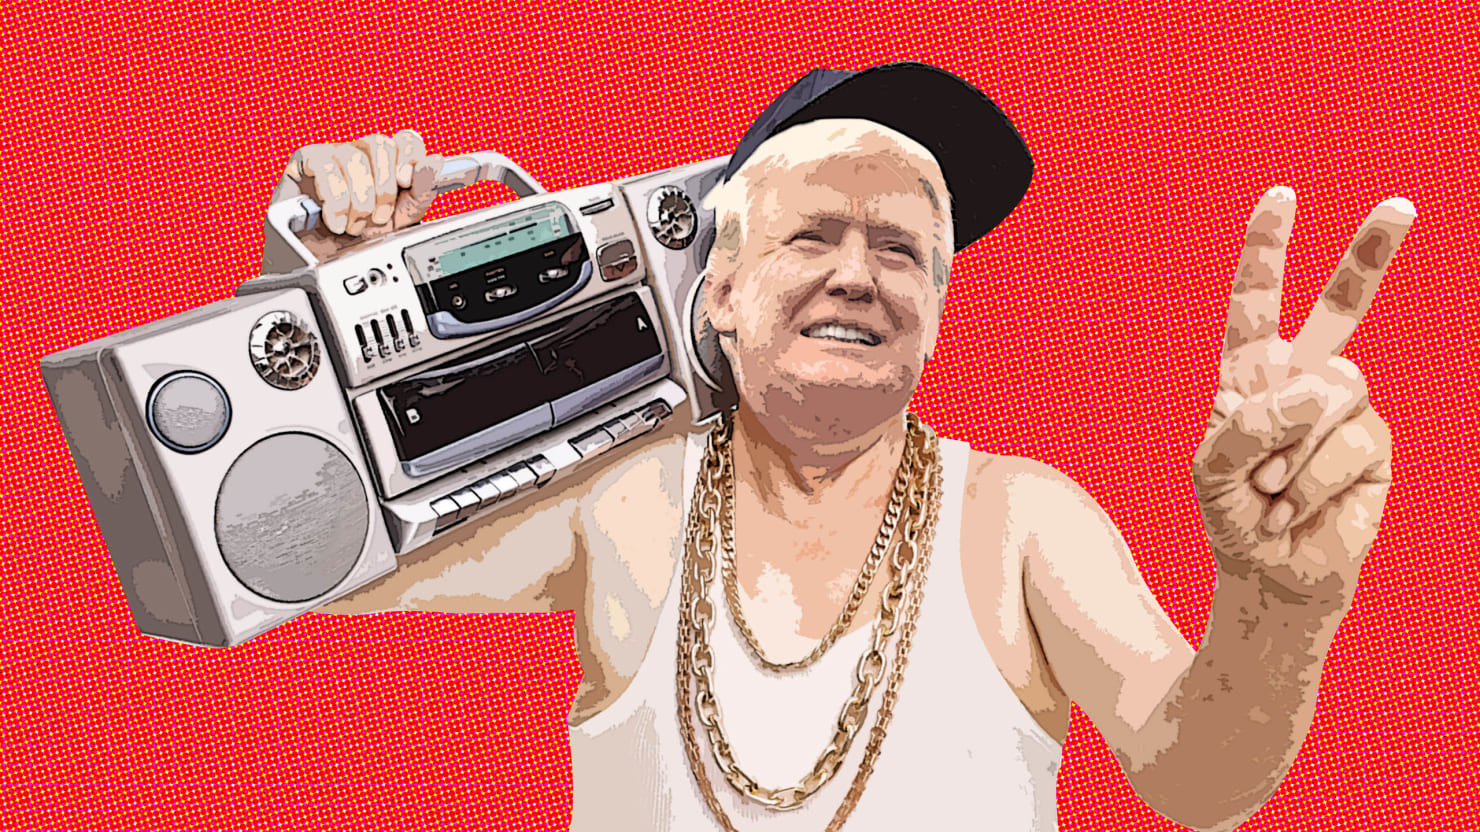 Why Do Rappers Idolize Noted Racist Donald Trump